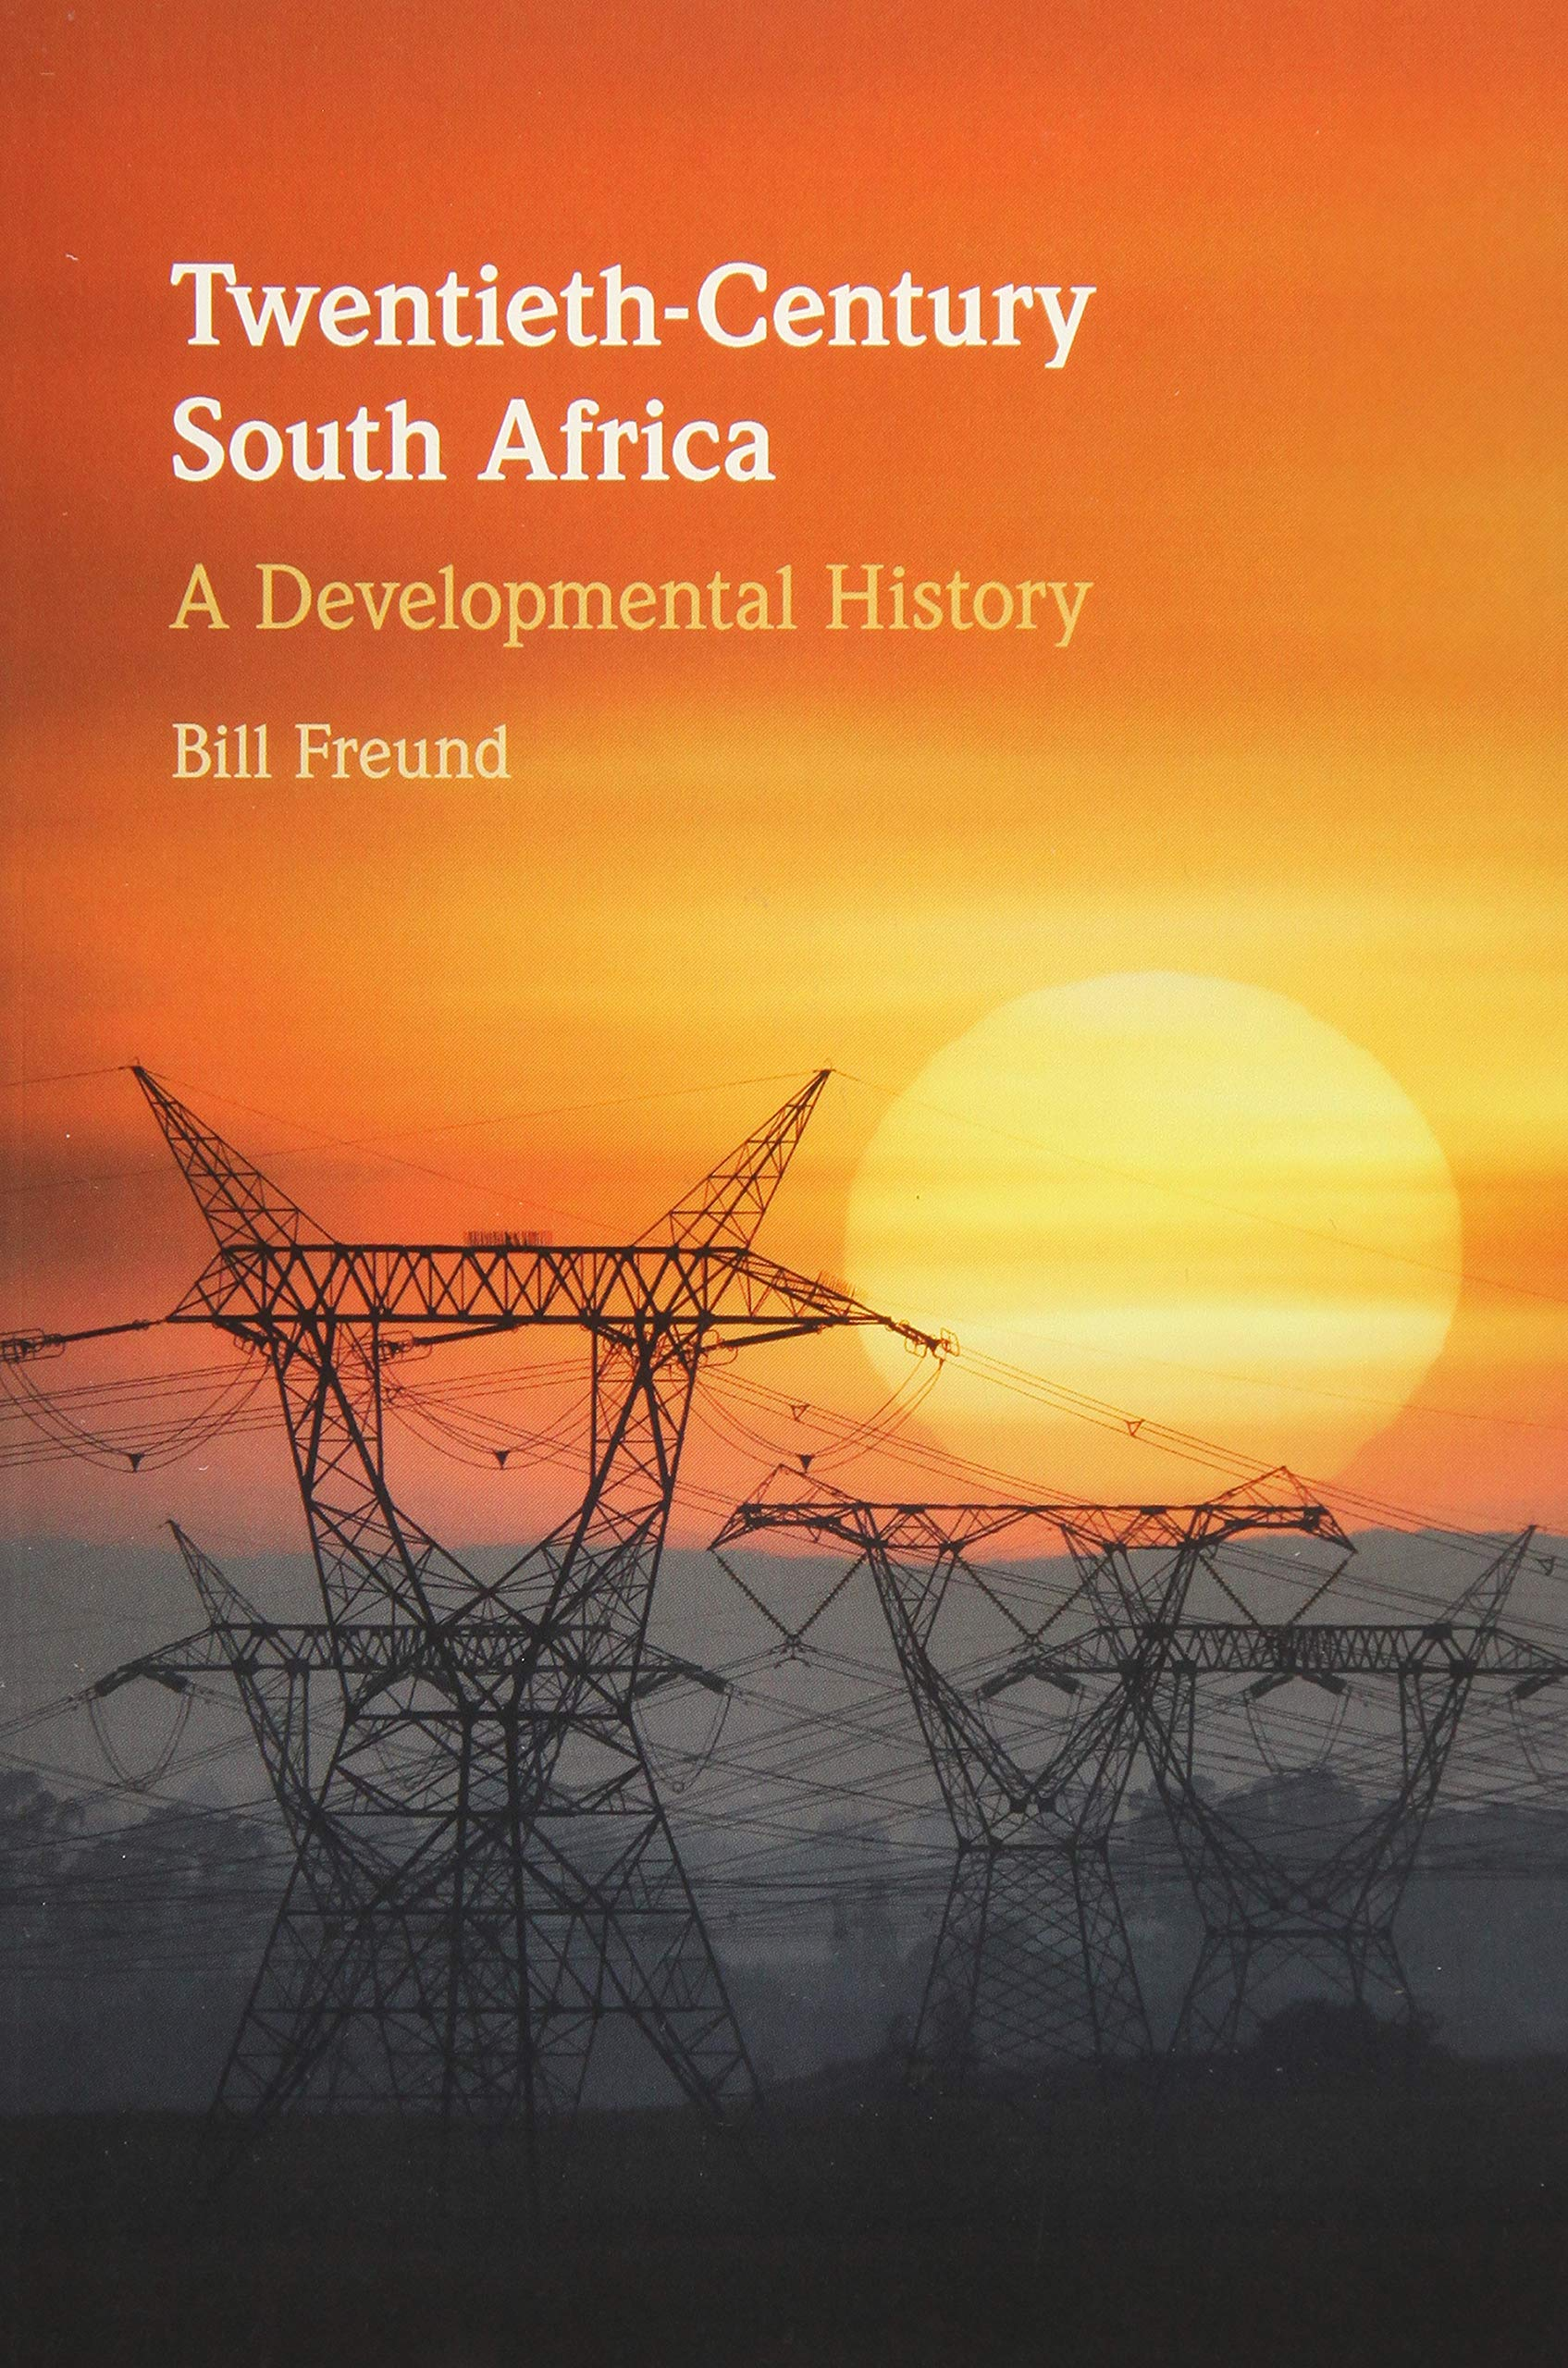 Twentieth-Century South Africa